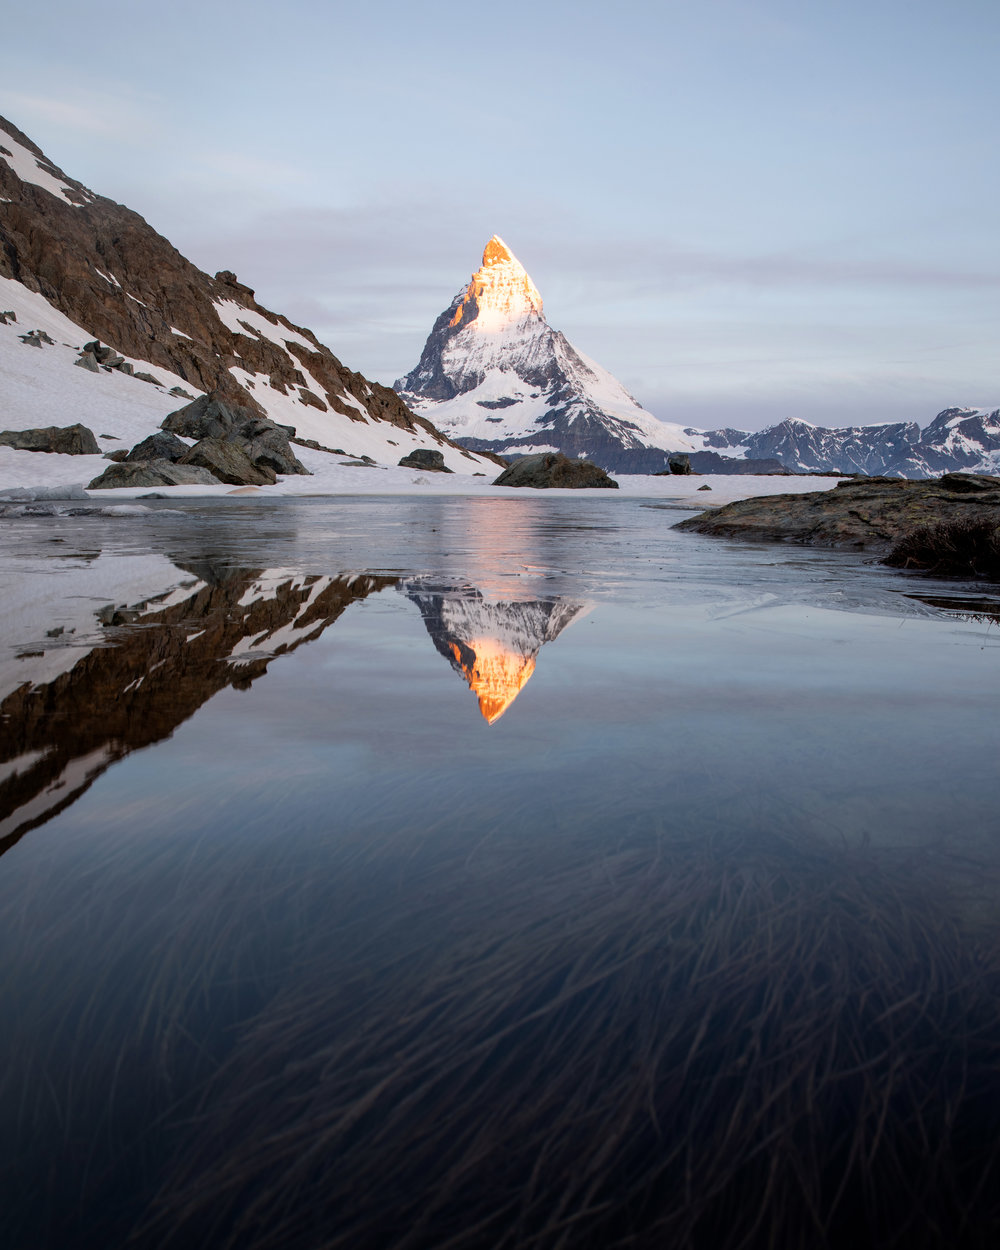 """""""Subtle sunrise at the Riffelsee"""" - June 15th, 2018 - Riffelsee, Switzerland -"""